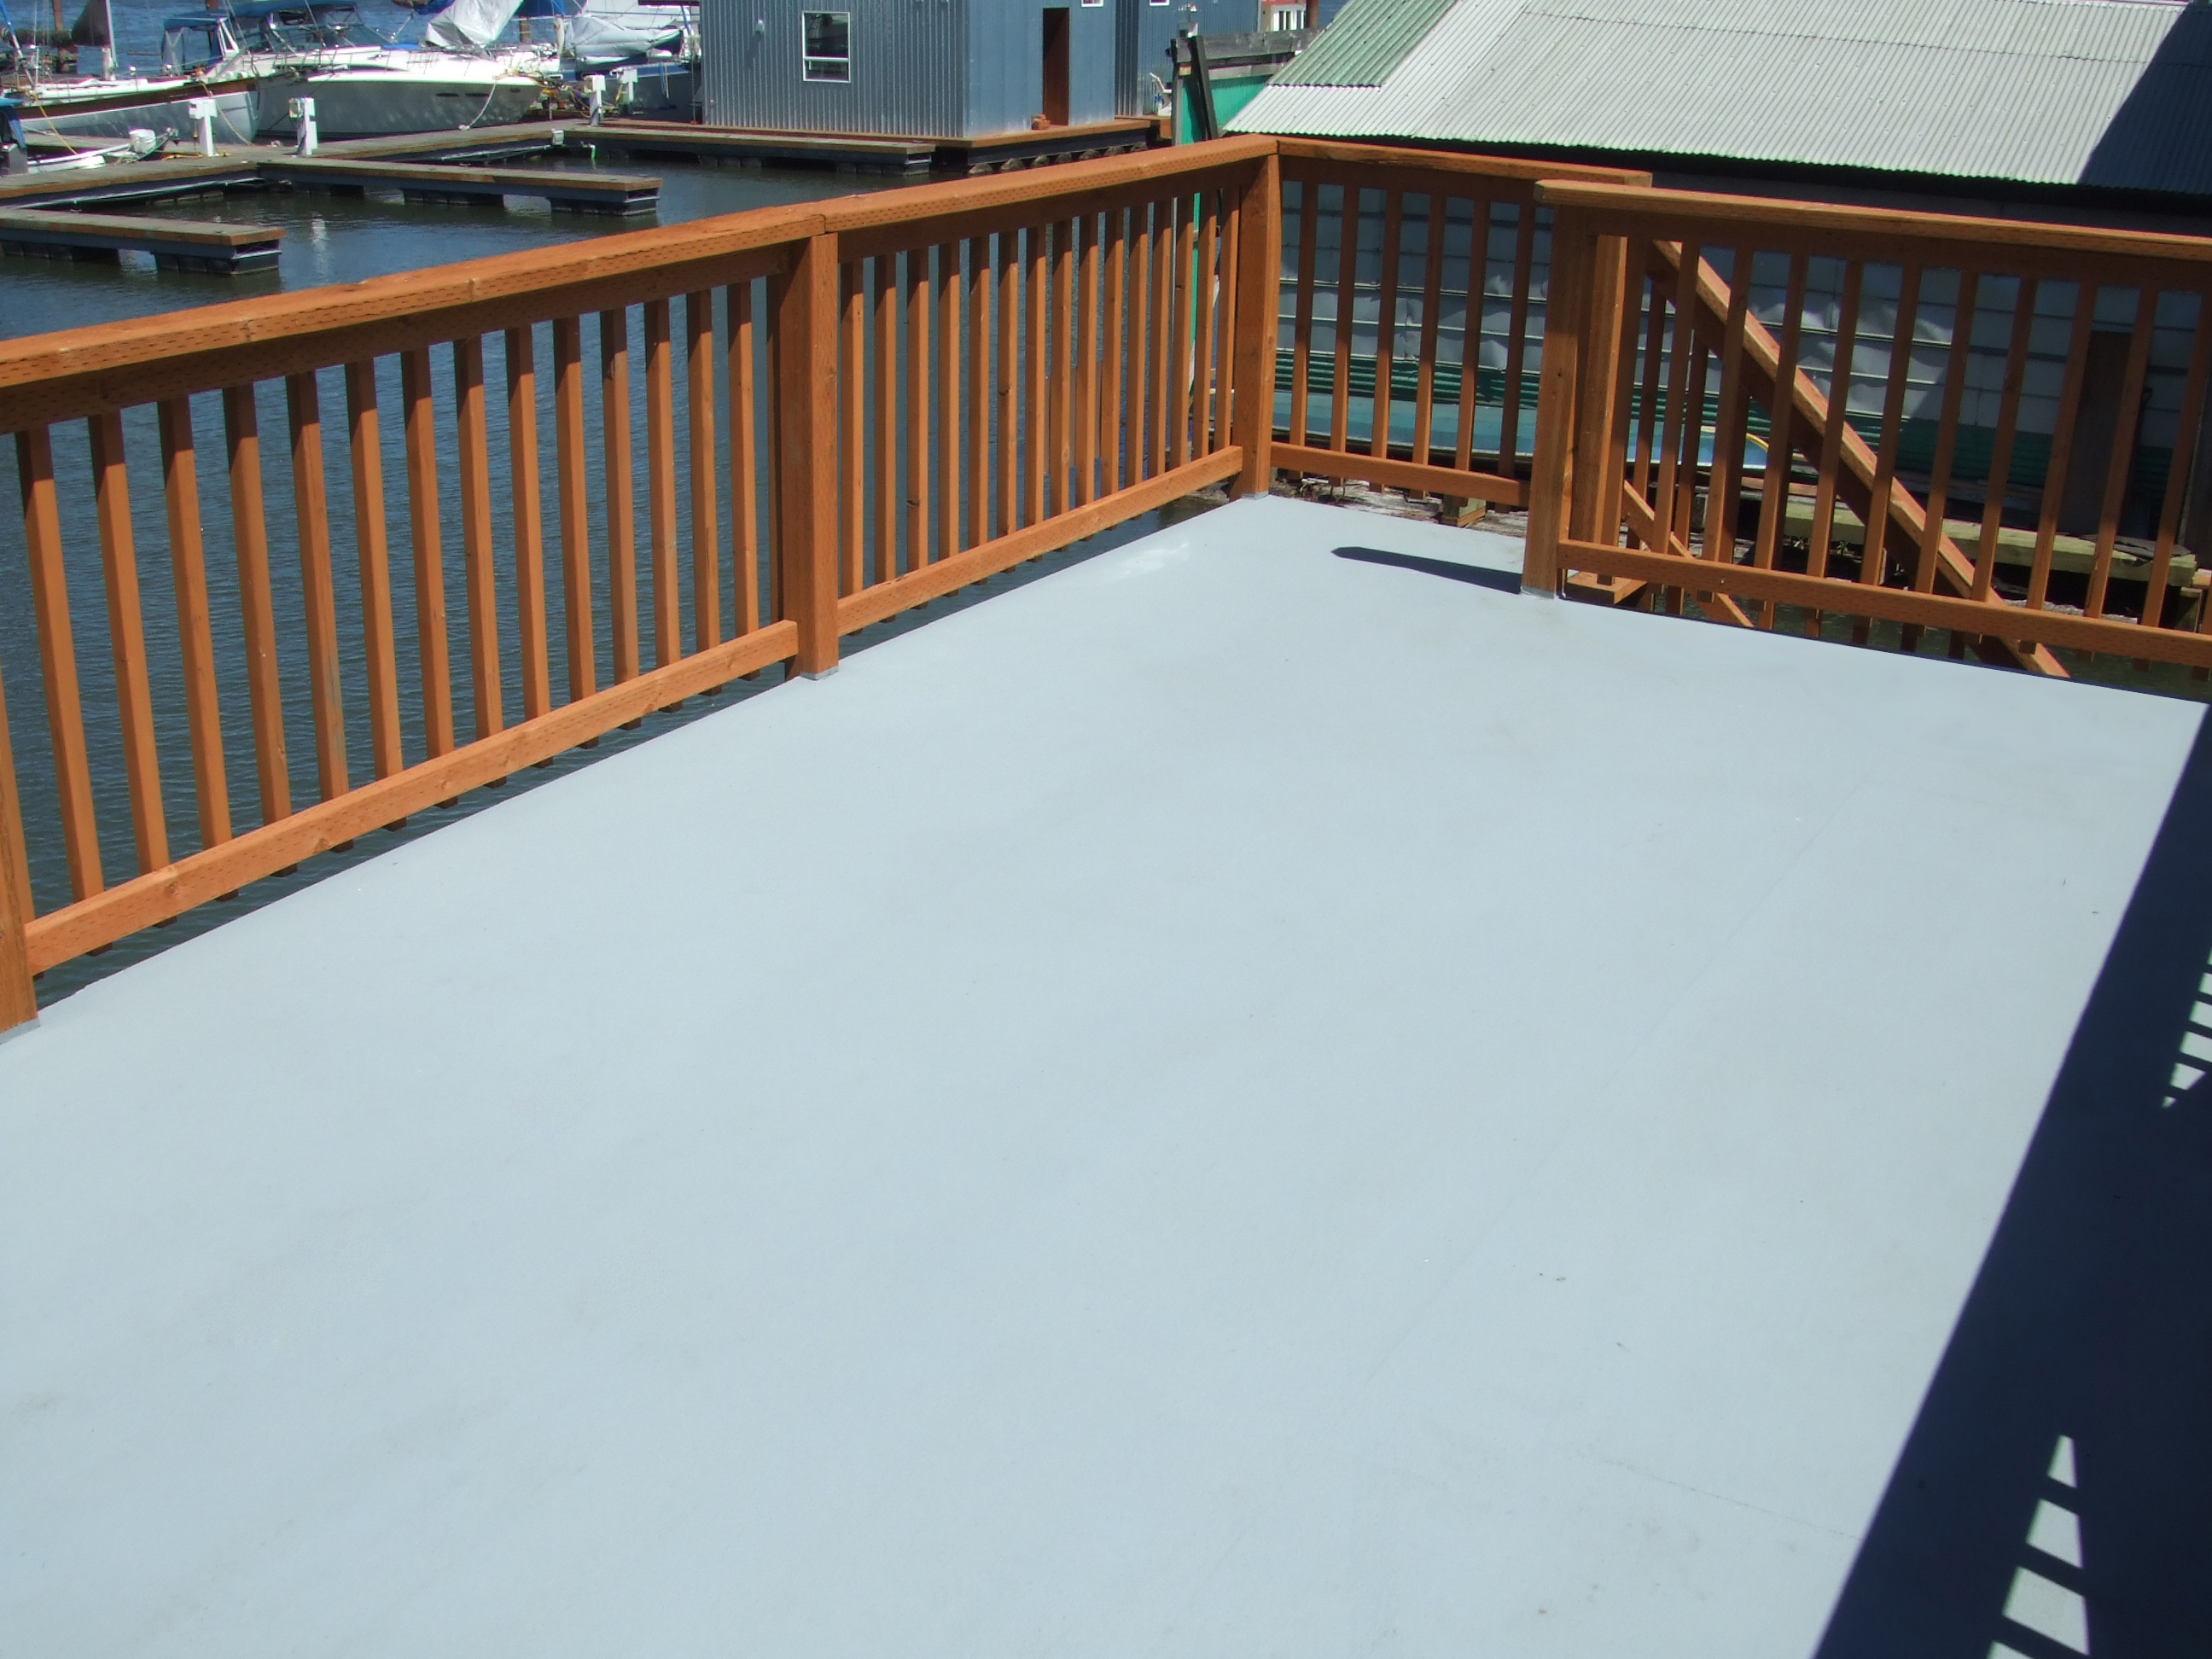 Spantex photo gallery waterproof deck coating